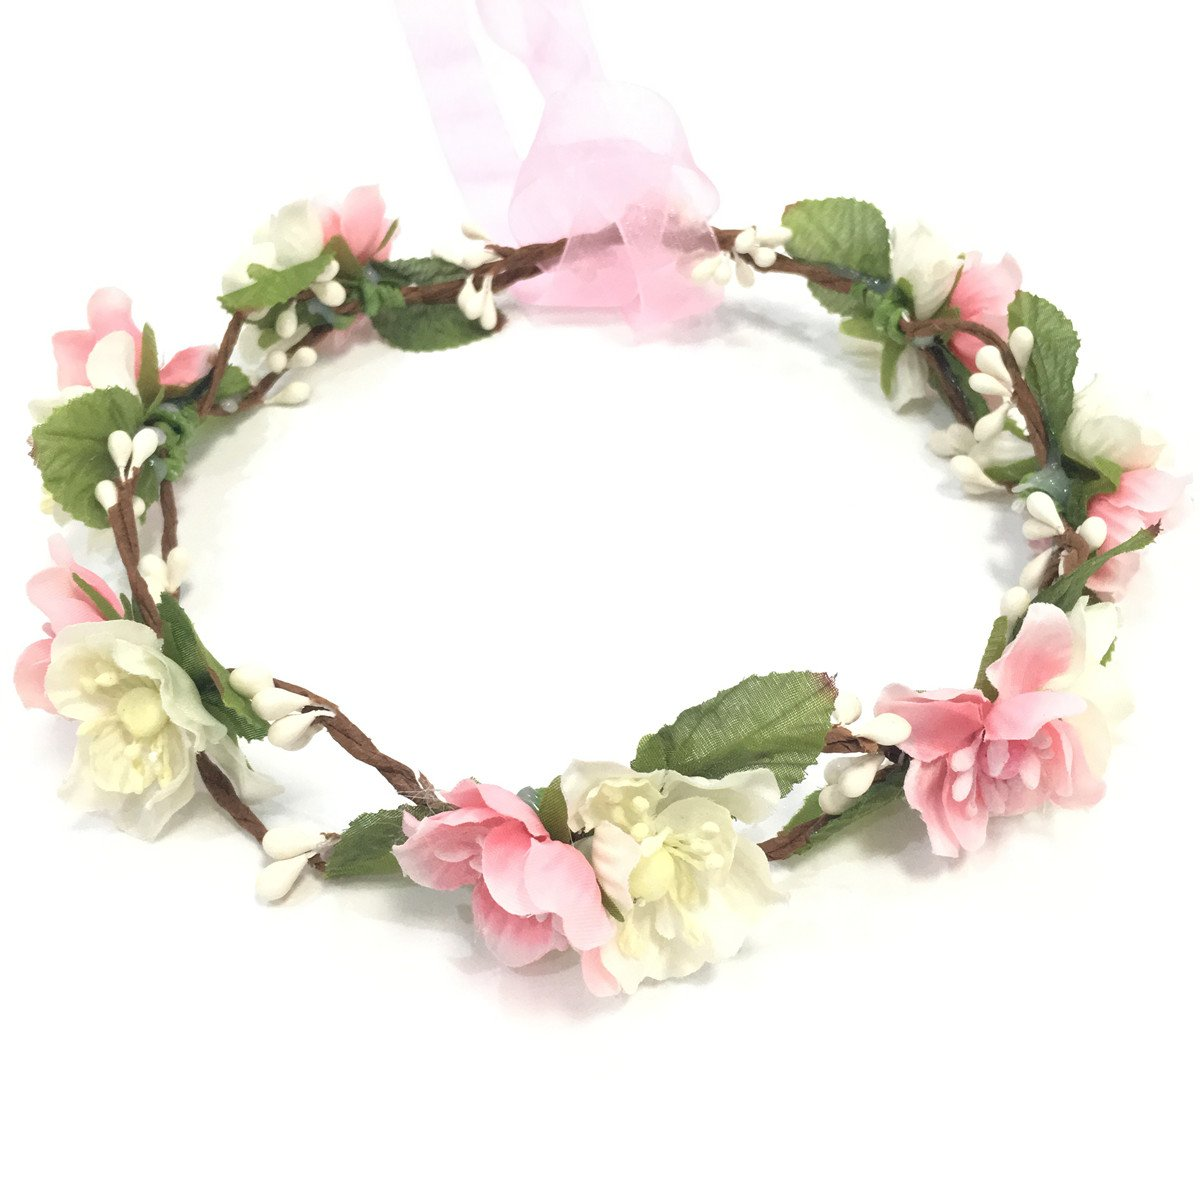 Amazon bridal flower crown floral crown wedding wreath amazon bridal flower crown floral crown wedding wreath headband garland women pink beauty izmirmasajfo